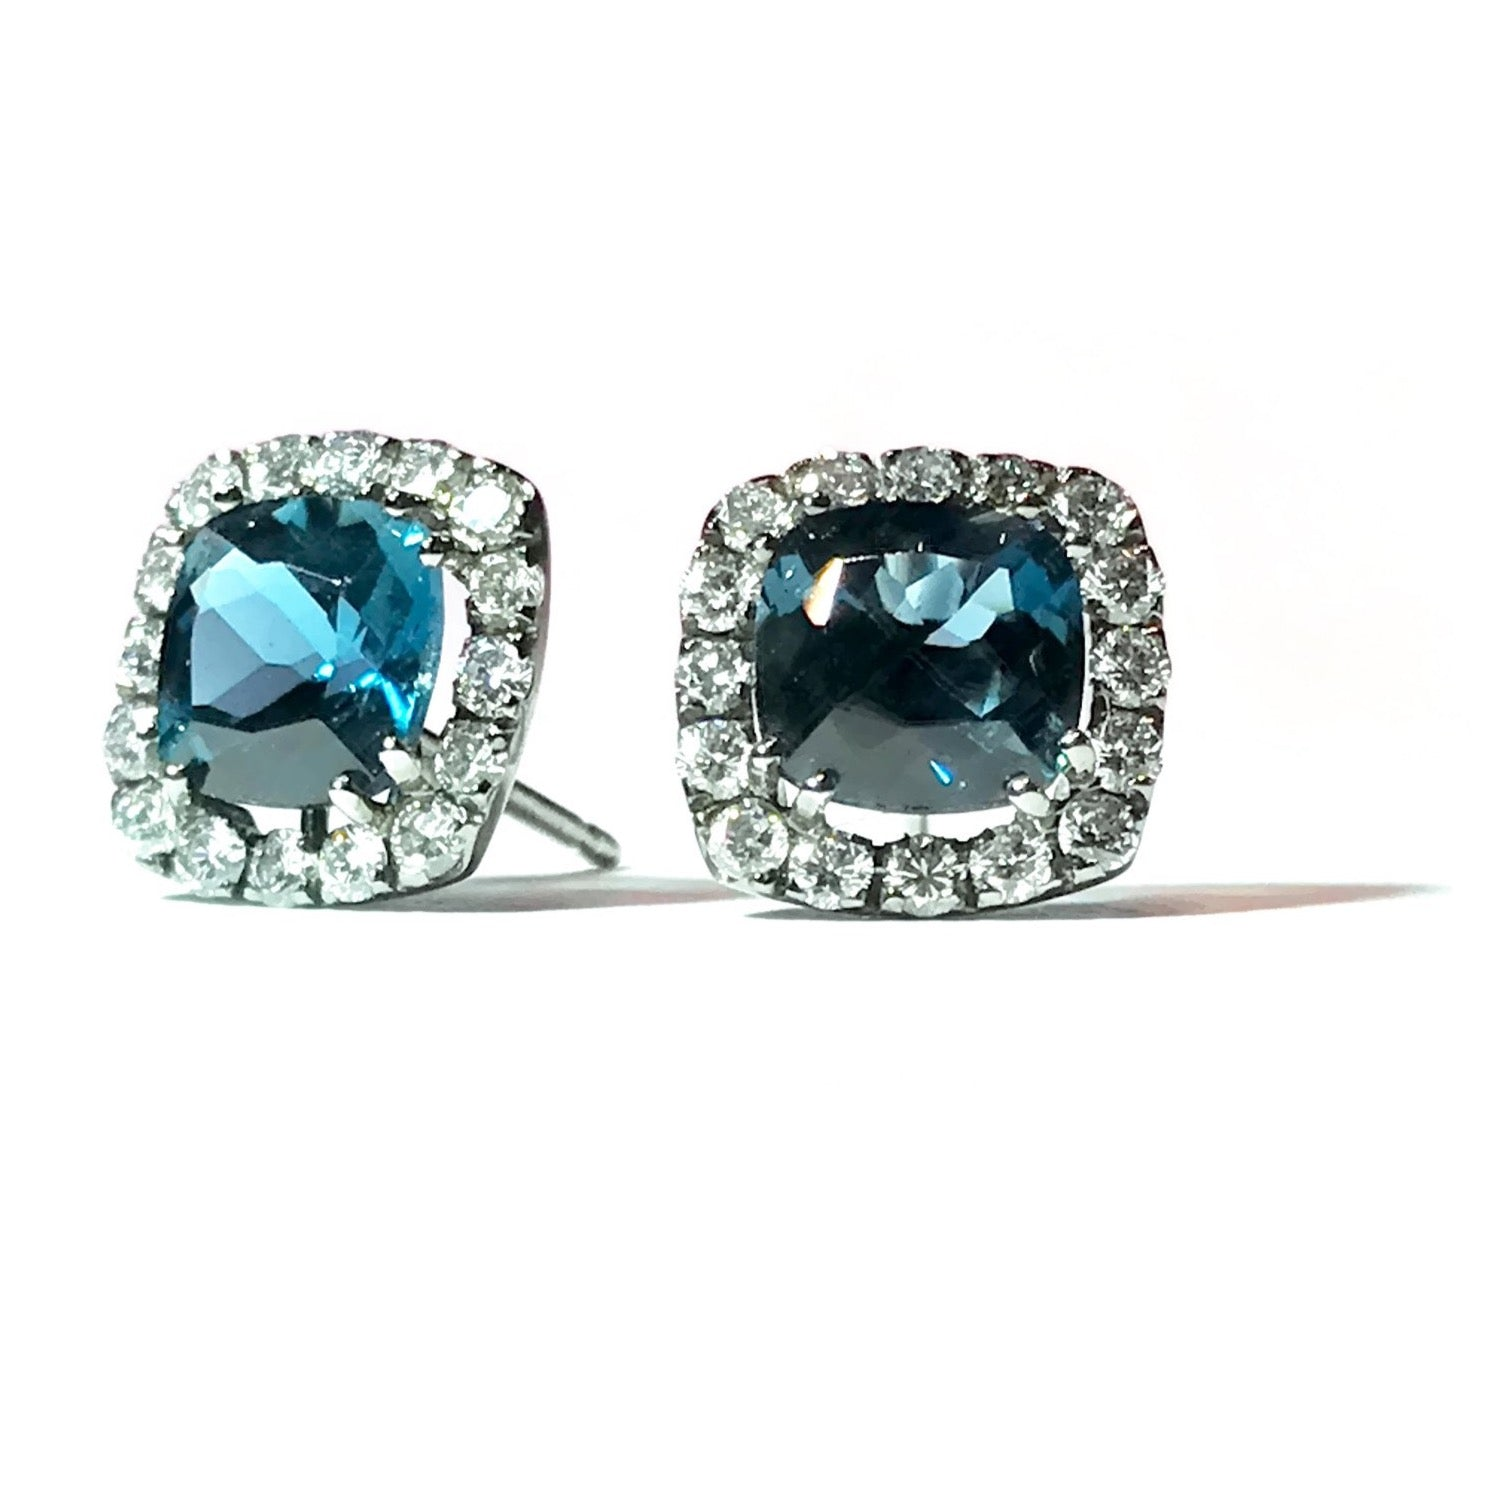 blue white topaz stud jewellery oval gemstone gold earrings image